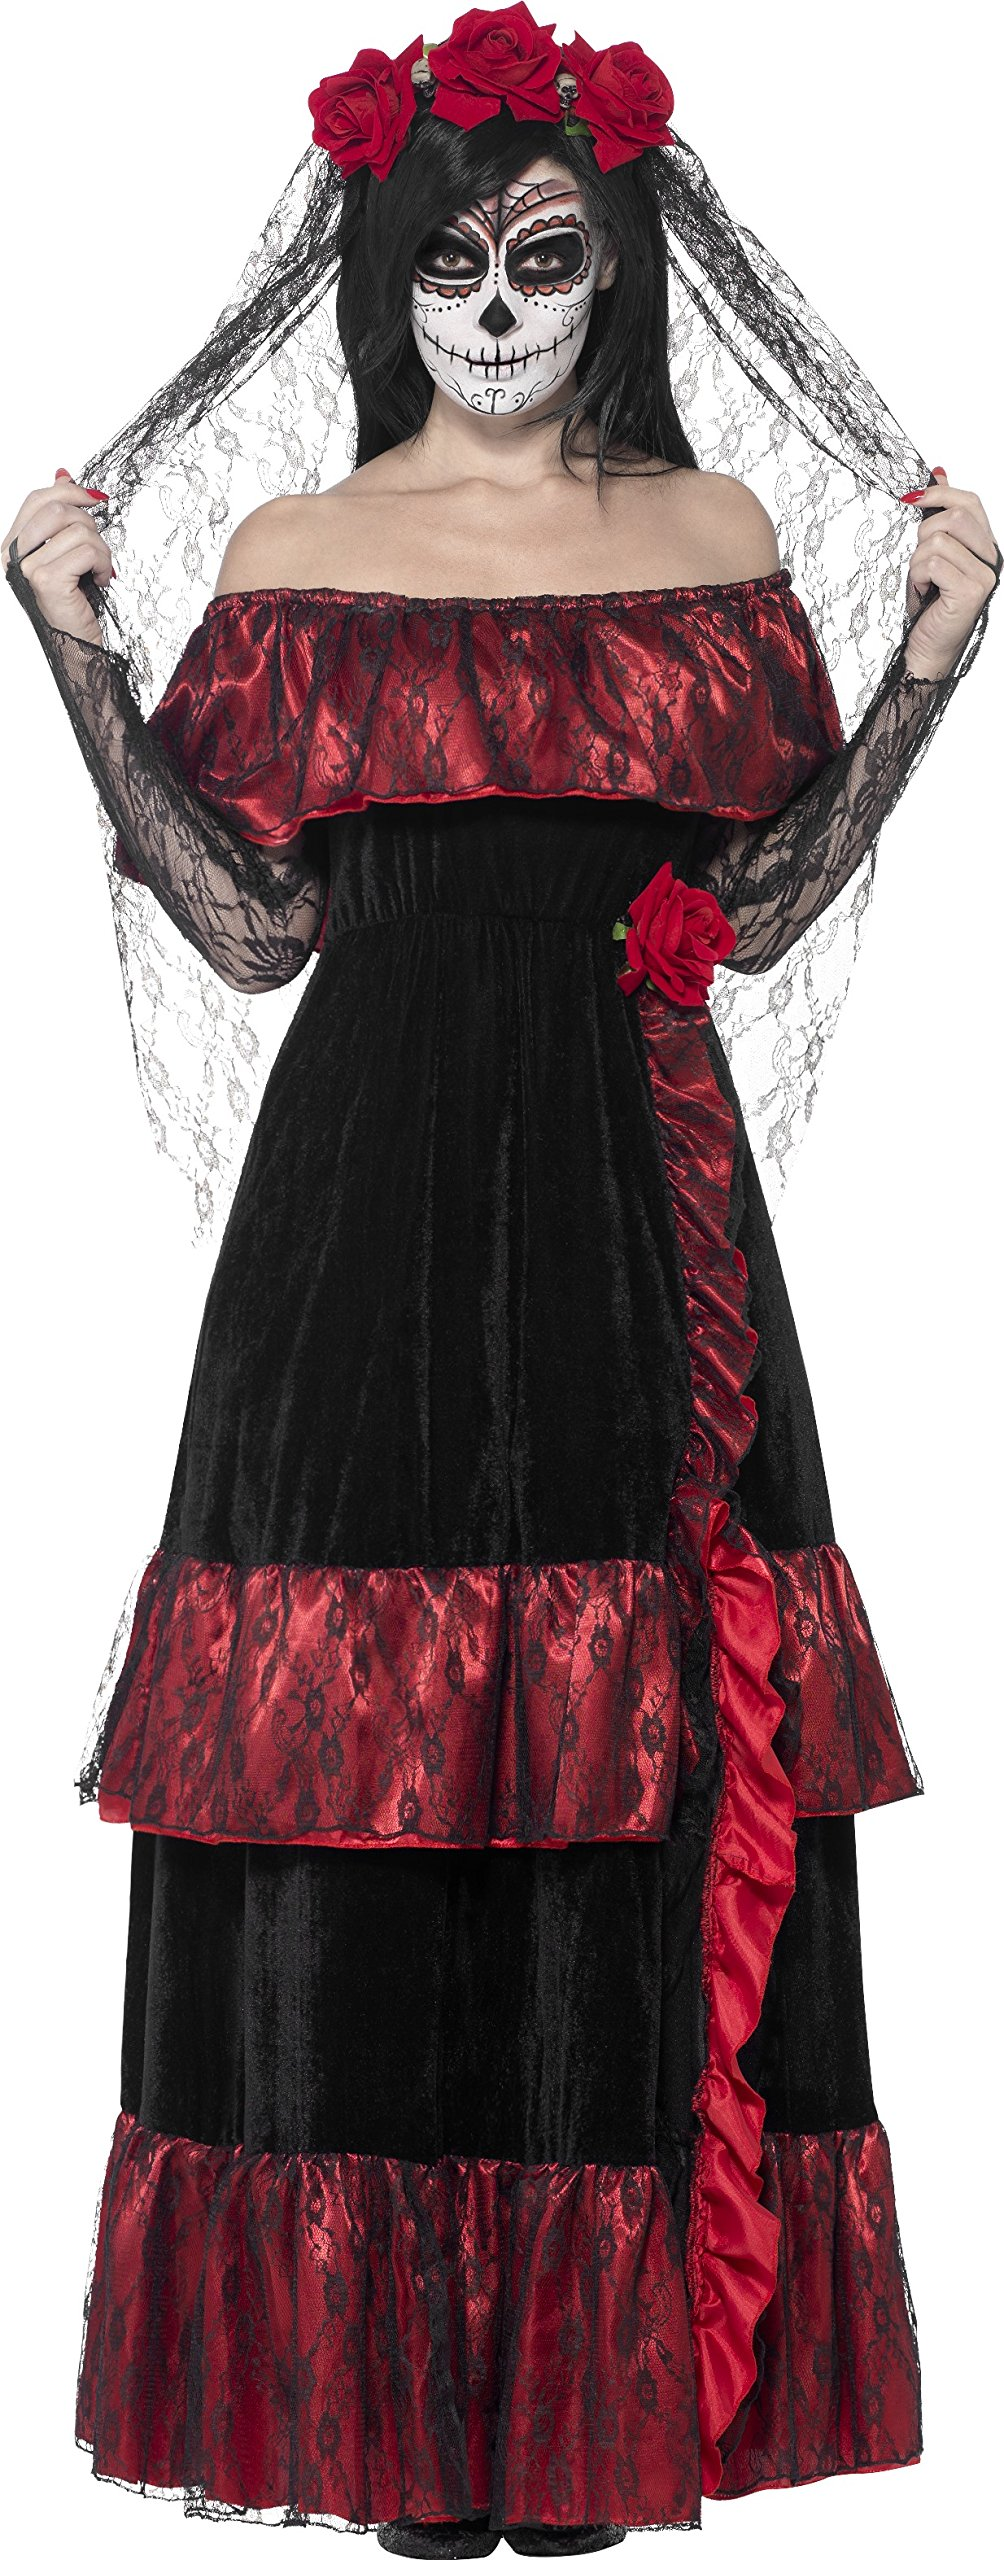 Smiffy's Women's Day The Dead Bride Costume, Dress Rose Veil, Day The Dead, Halloween, Size 10-12, 43739